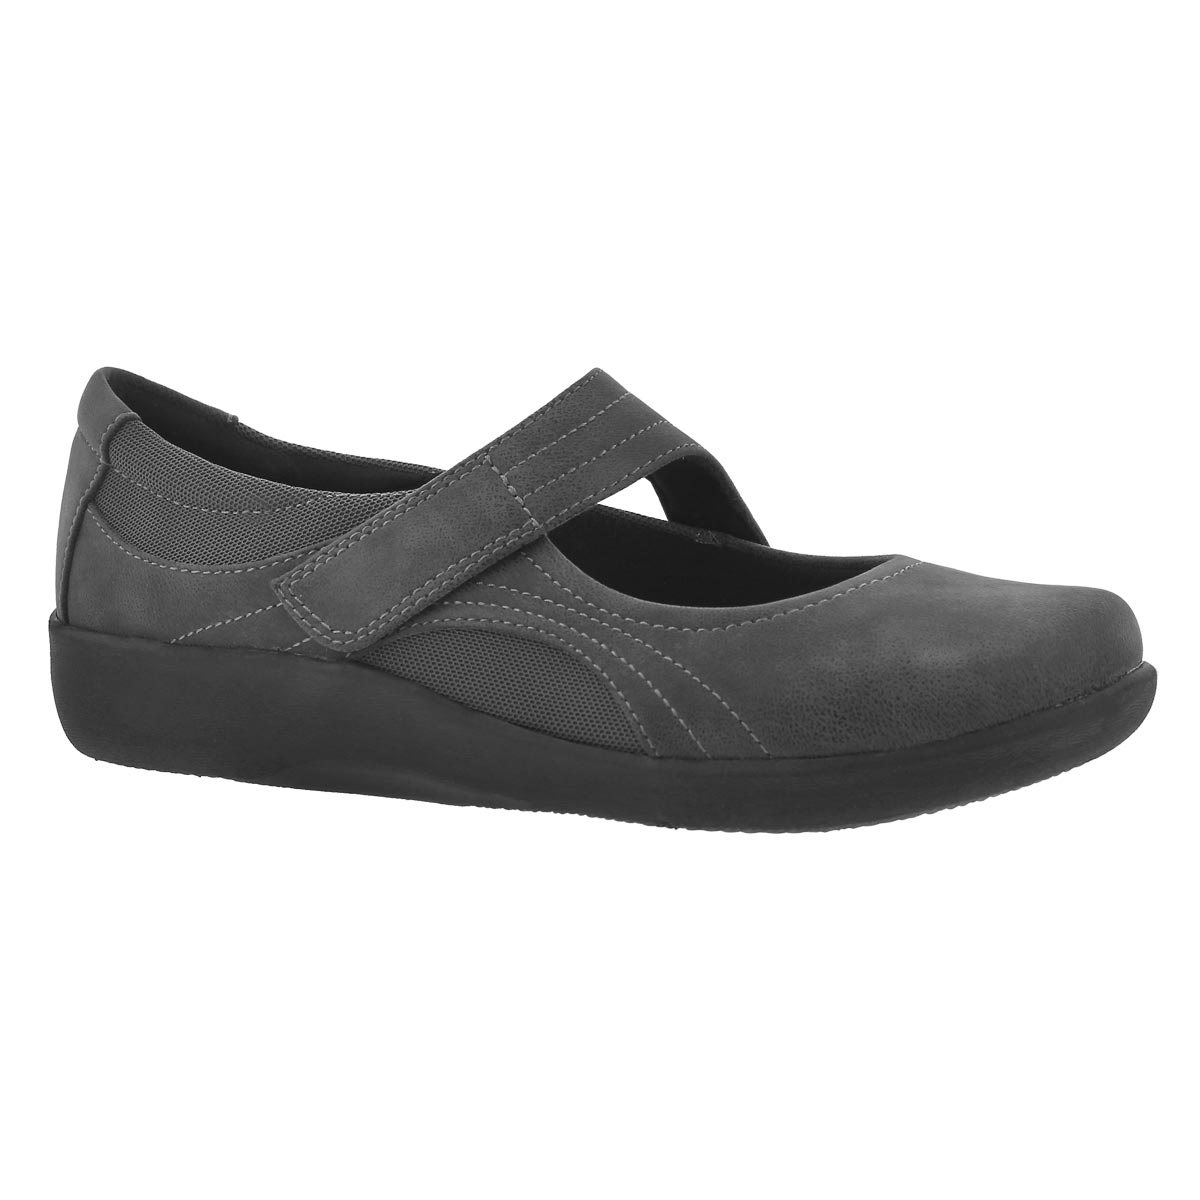 Women's SILLIAN BELLA grey casual Mary Janes